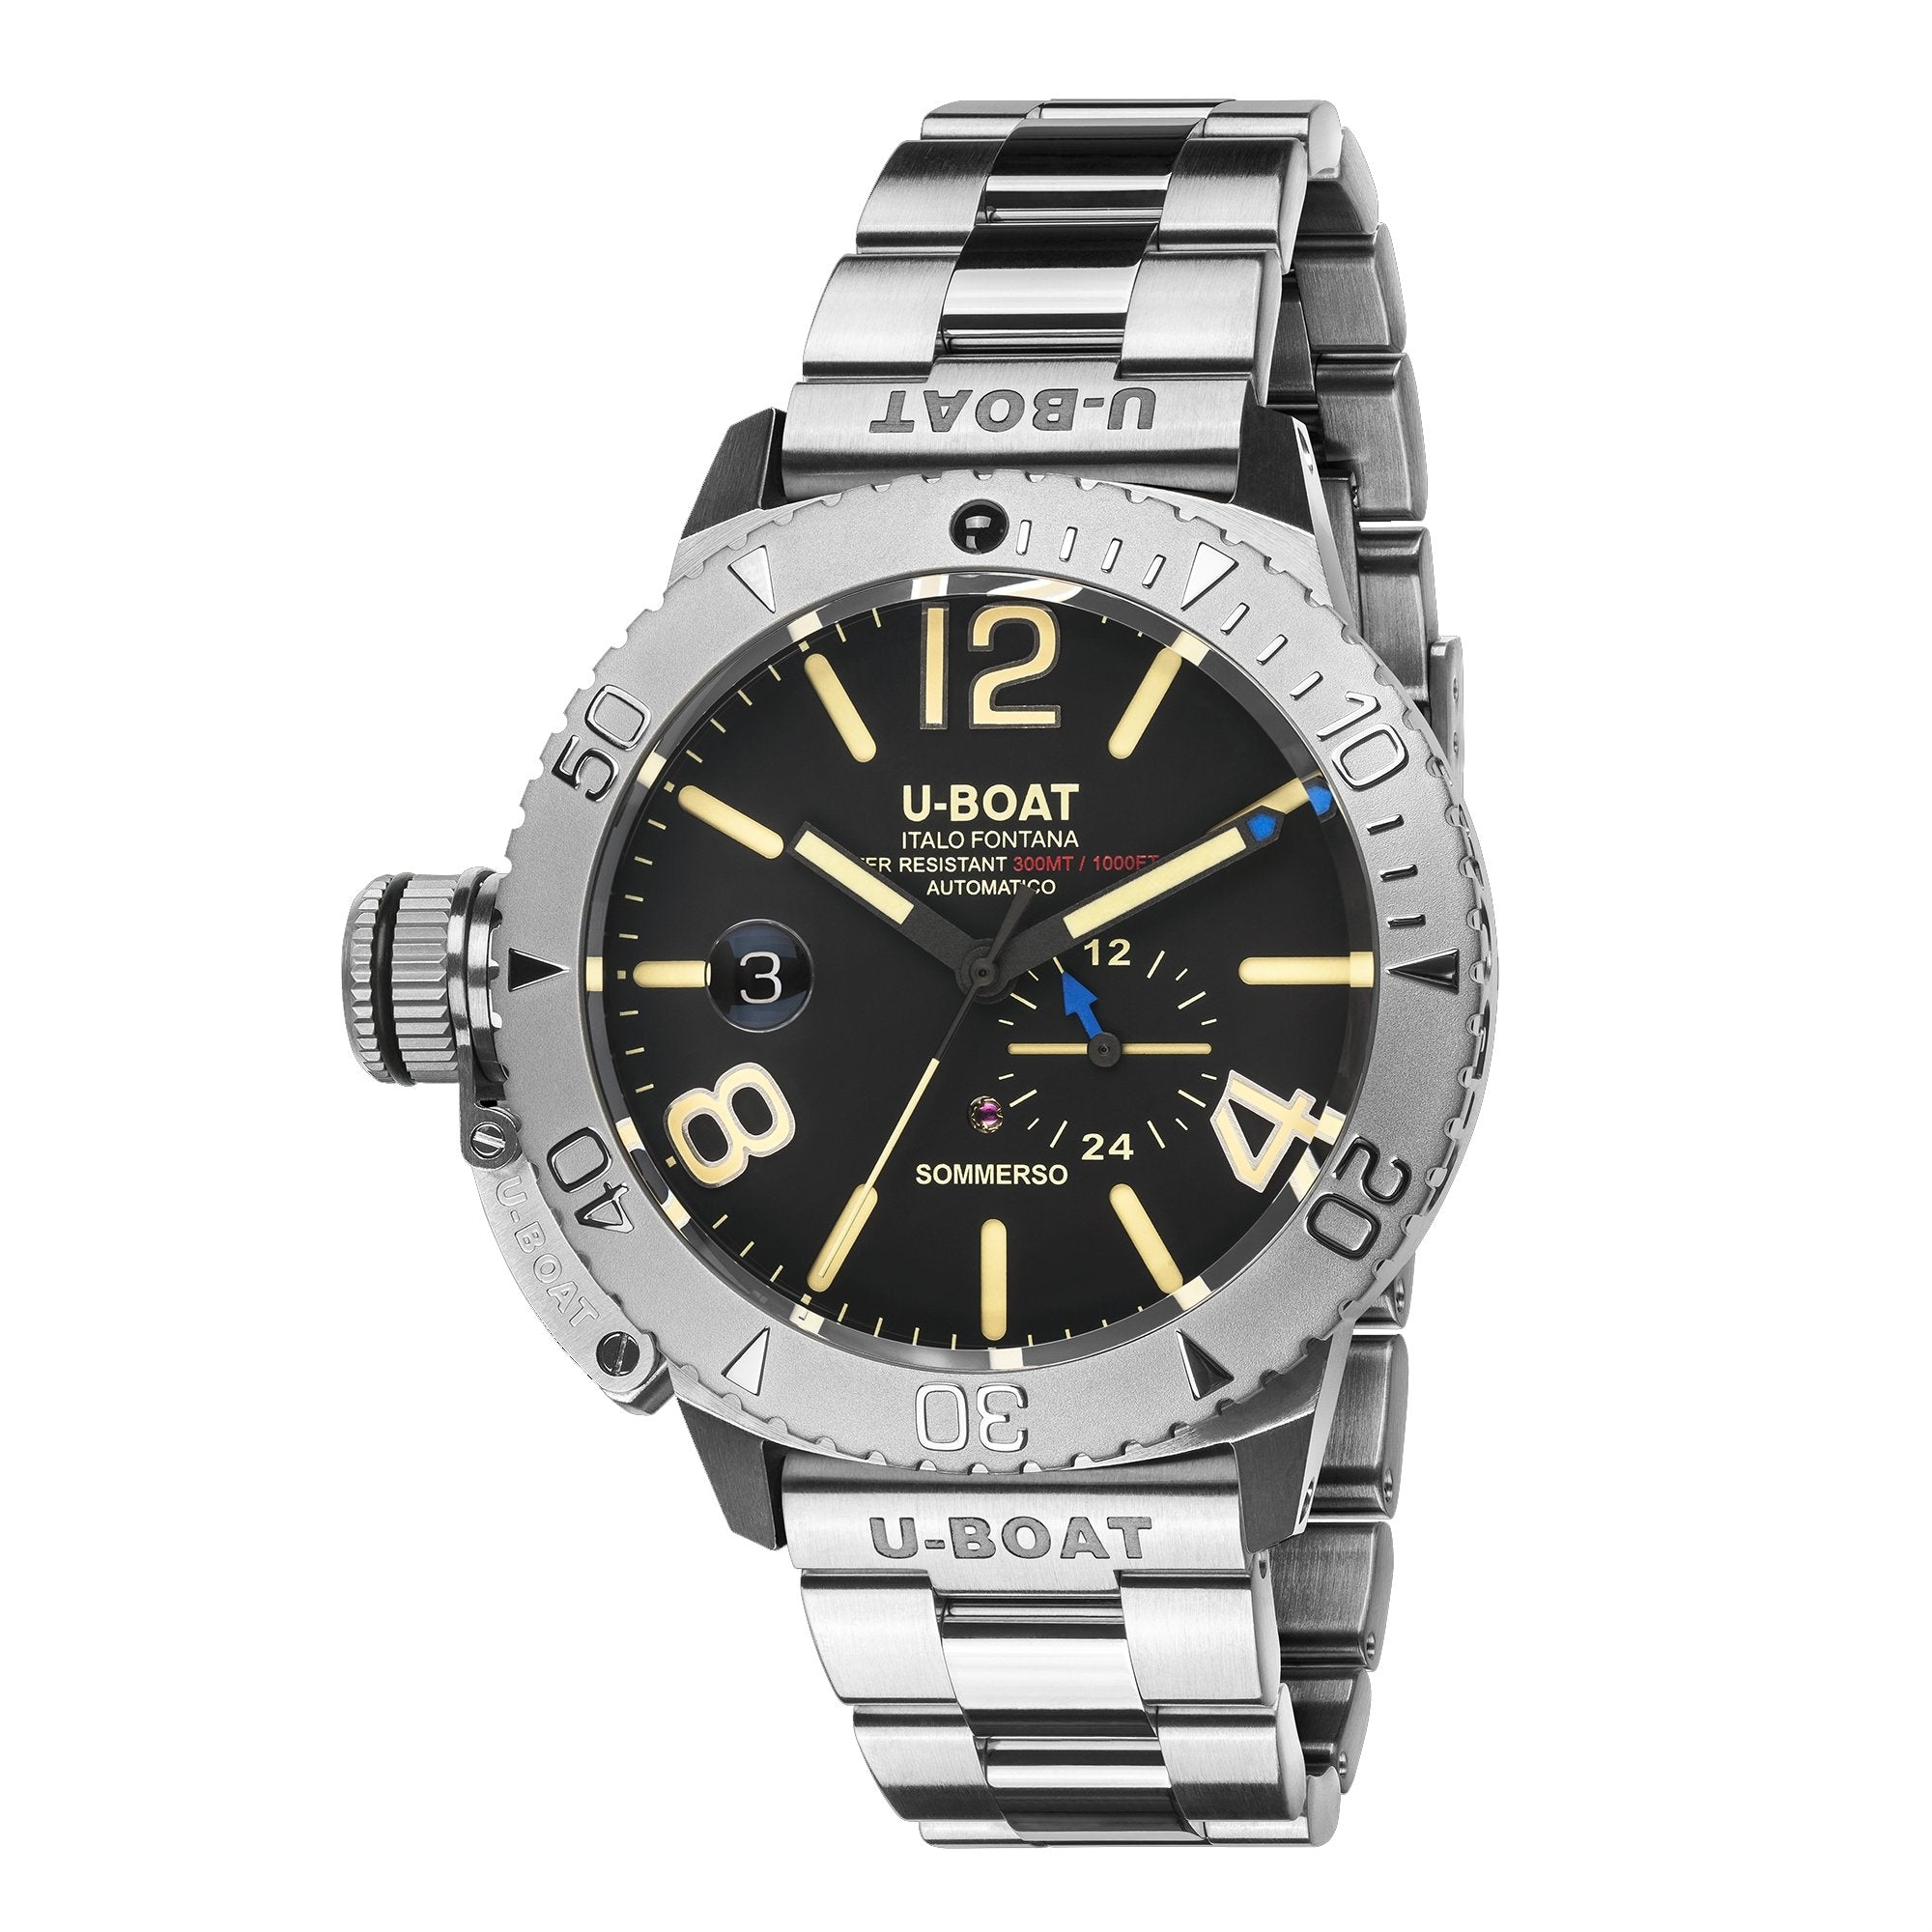 U-Boat Sommerso Diver Stainless Steel - Watches & Crystals